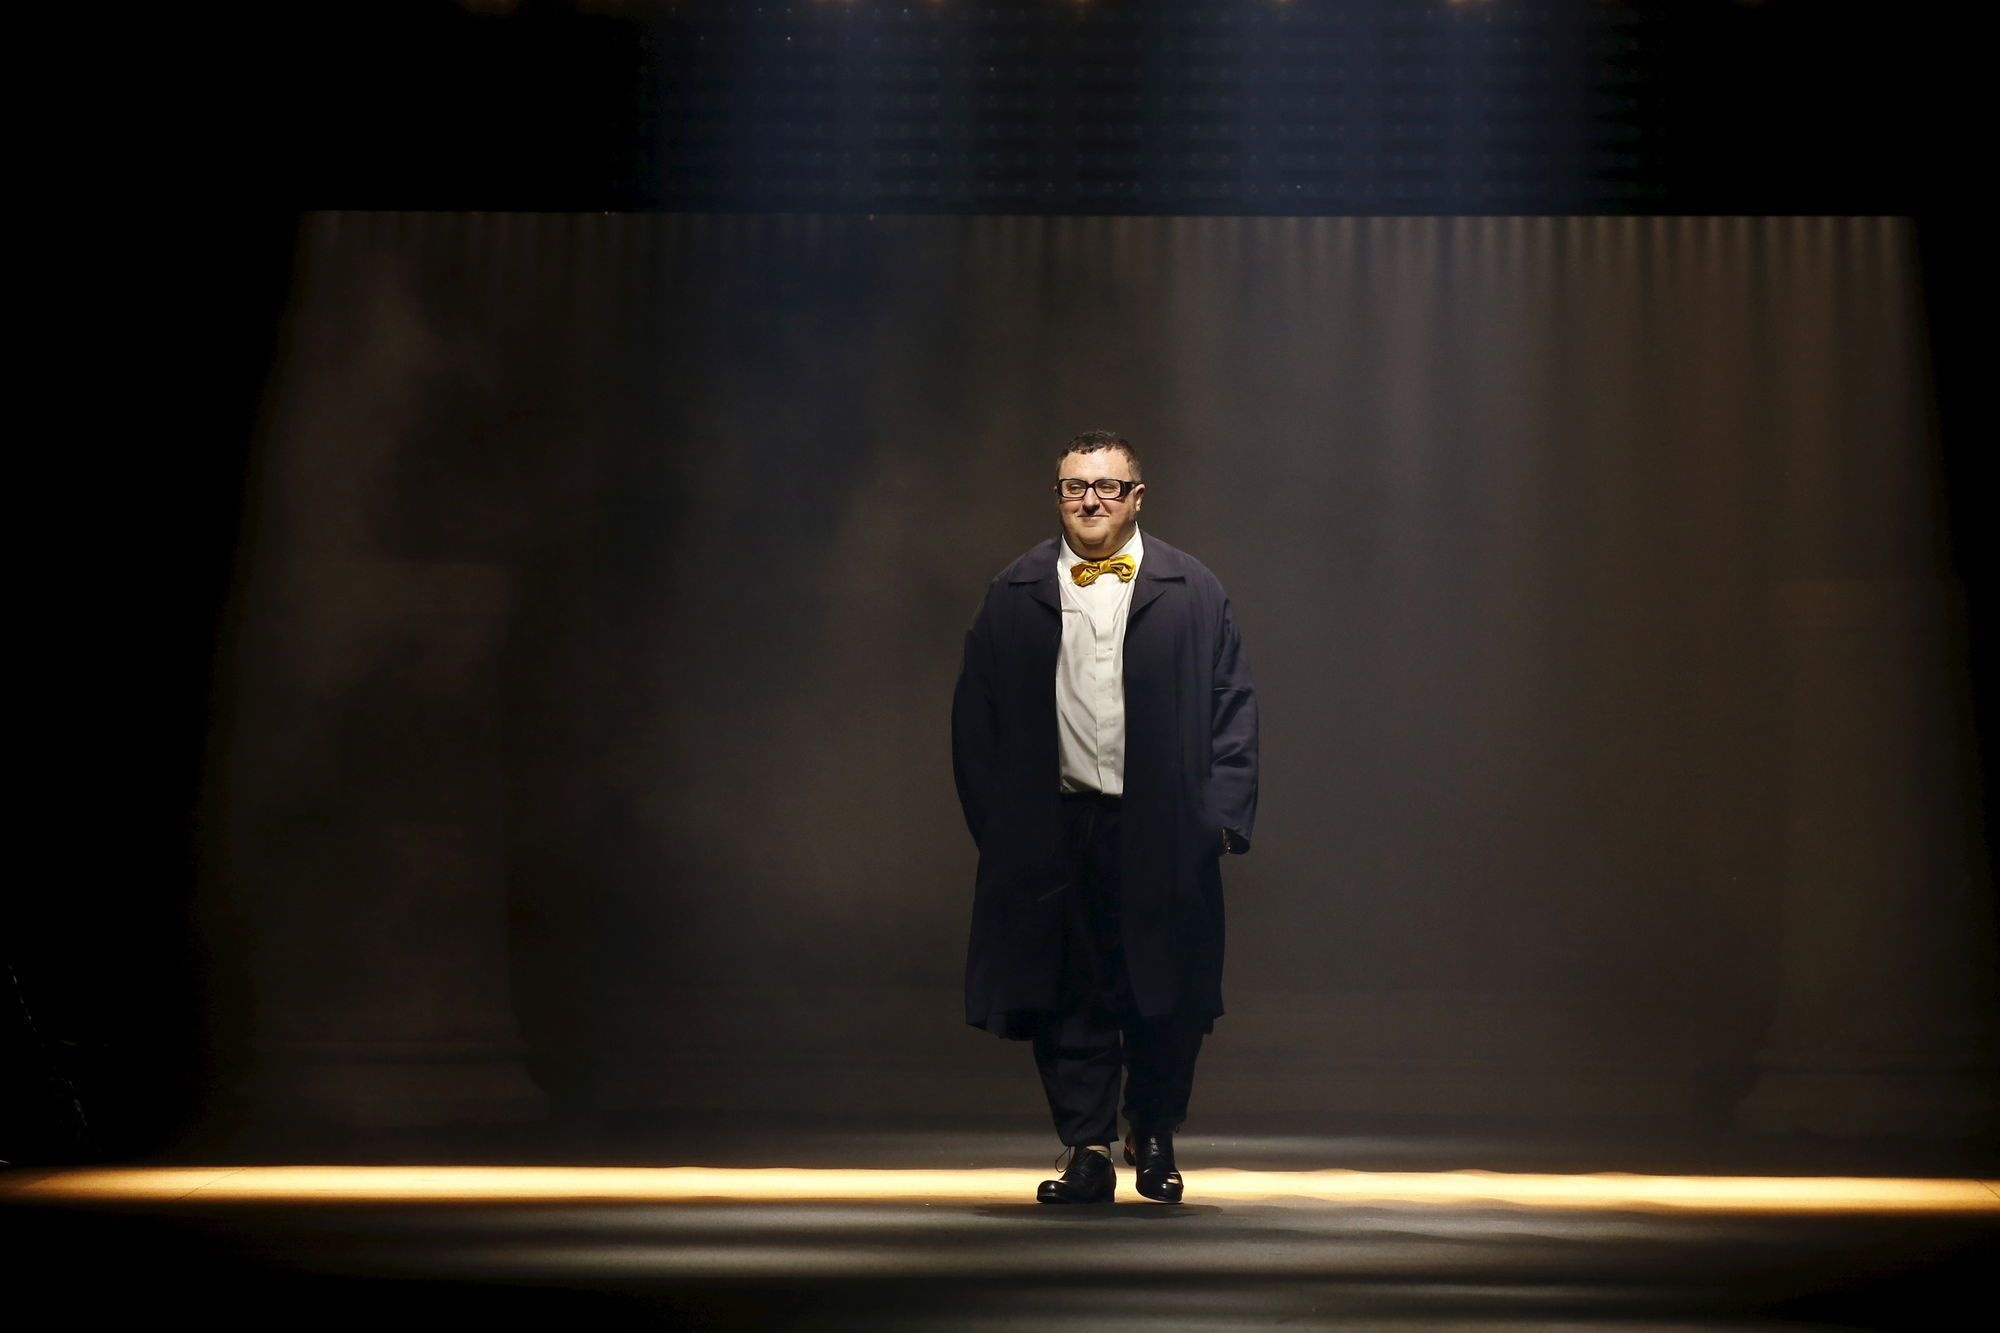 Israeli-American designer Alber Elbaz appears at the end of his Spring/Summer 2016 women's ready-to-wear fashion show for Lanvin in Paris, France, October 1, 2015. REUTERS/Benoit Tessier - RTS2NNM, REUTERS